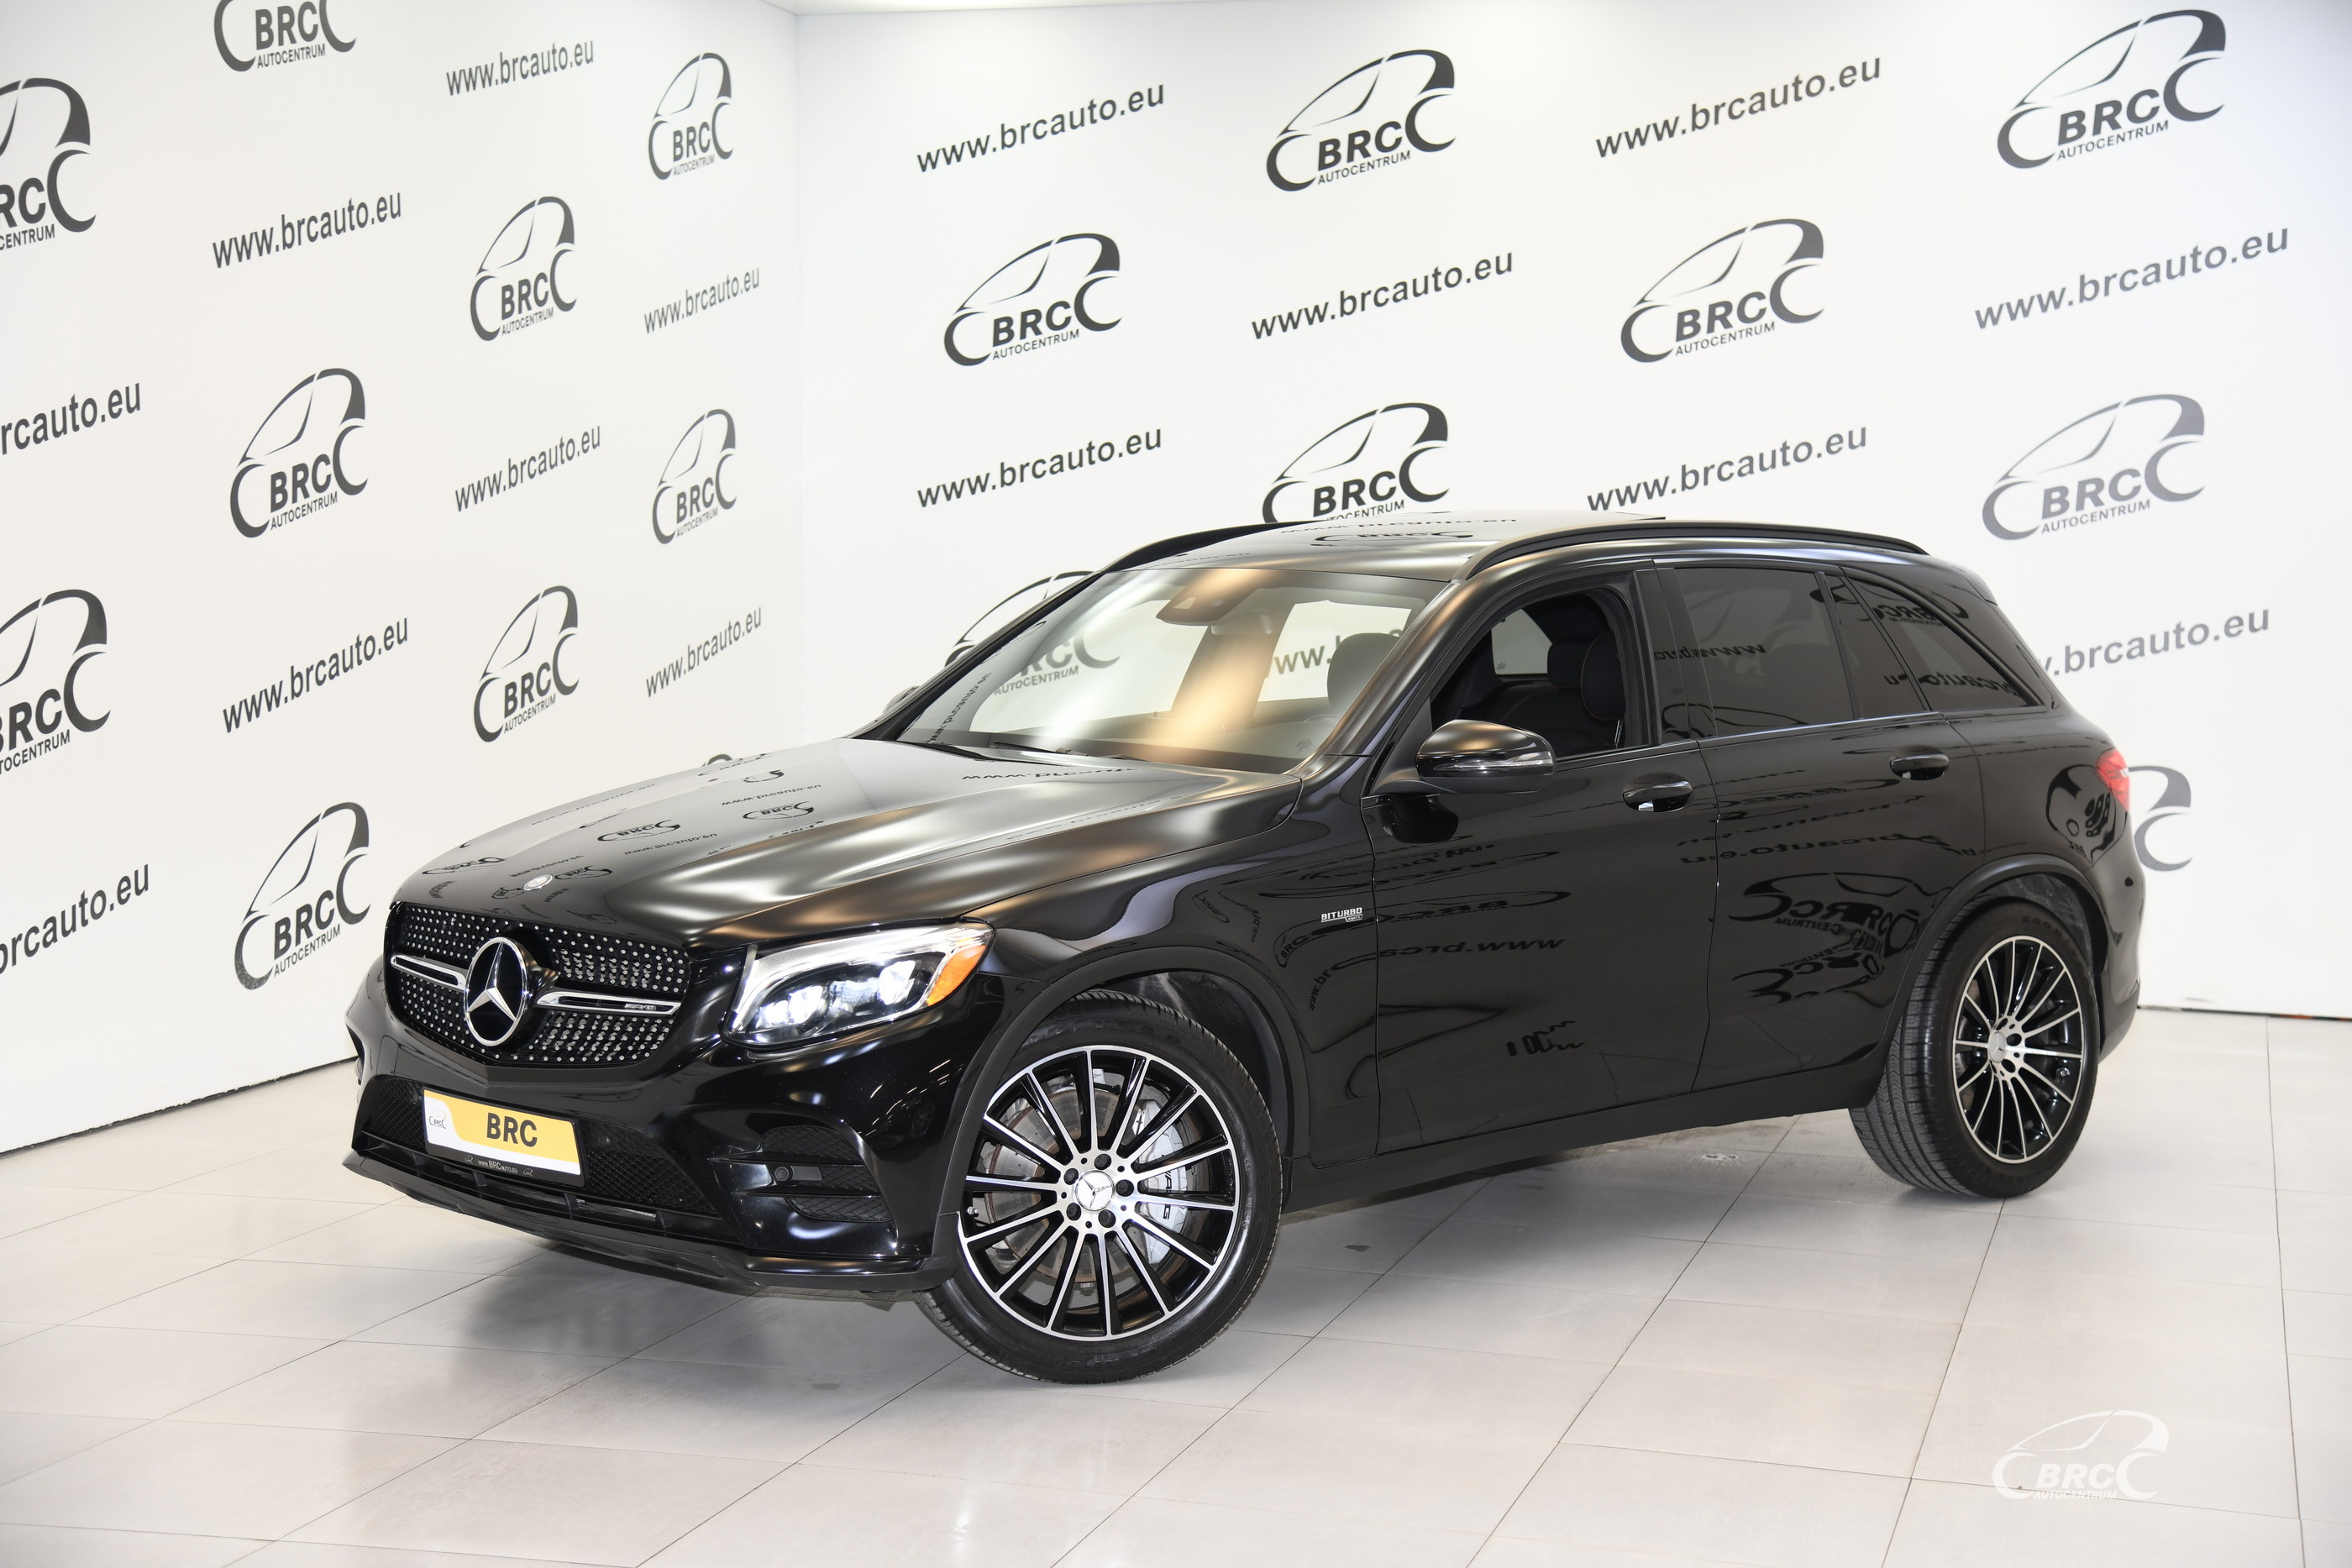 Mercedes-Benz GLC 43 AMG 4Matic Automatas